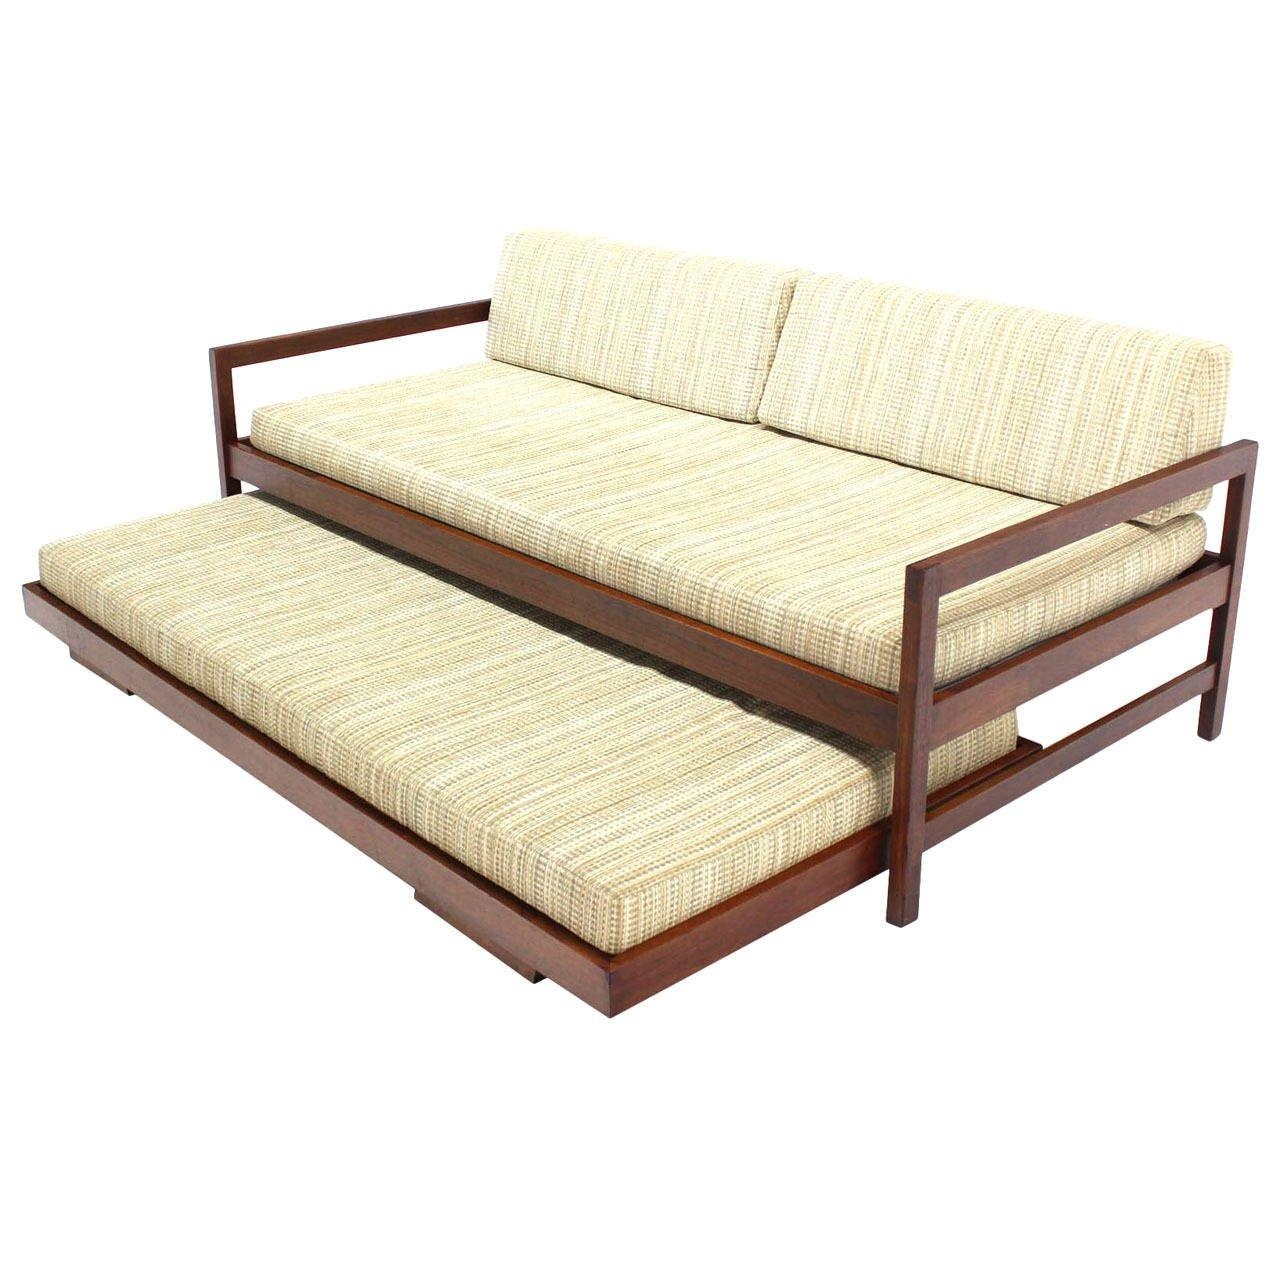 Solid Walnut Frame Mid Century Modern Trundle, Pull Out Daybed At With Regard To Sofas With Trundle (Image 17 of 20)